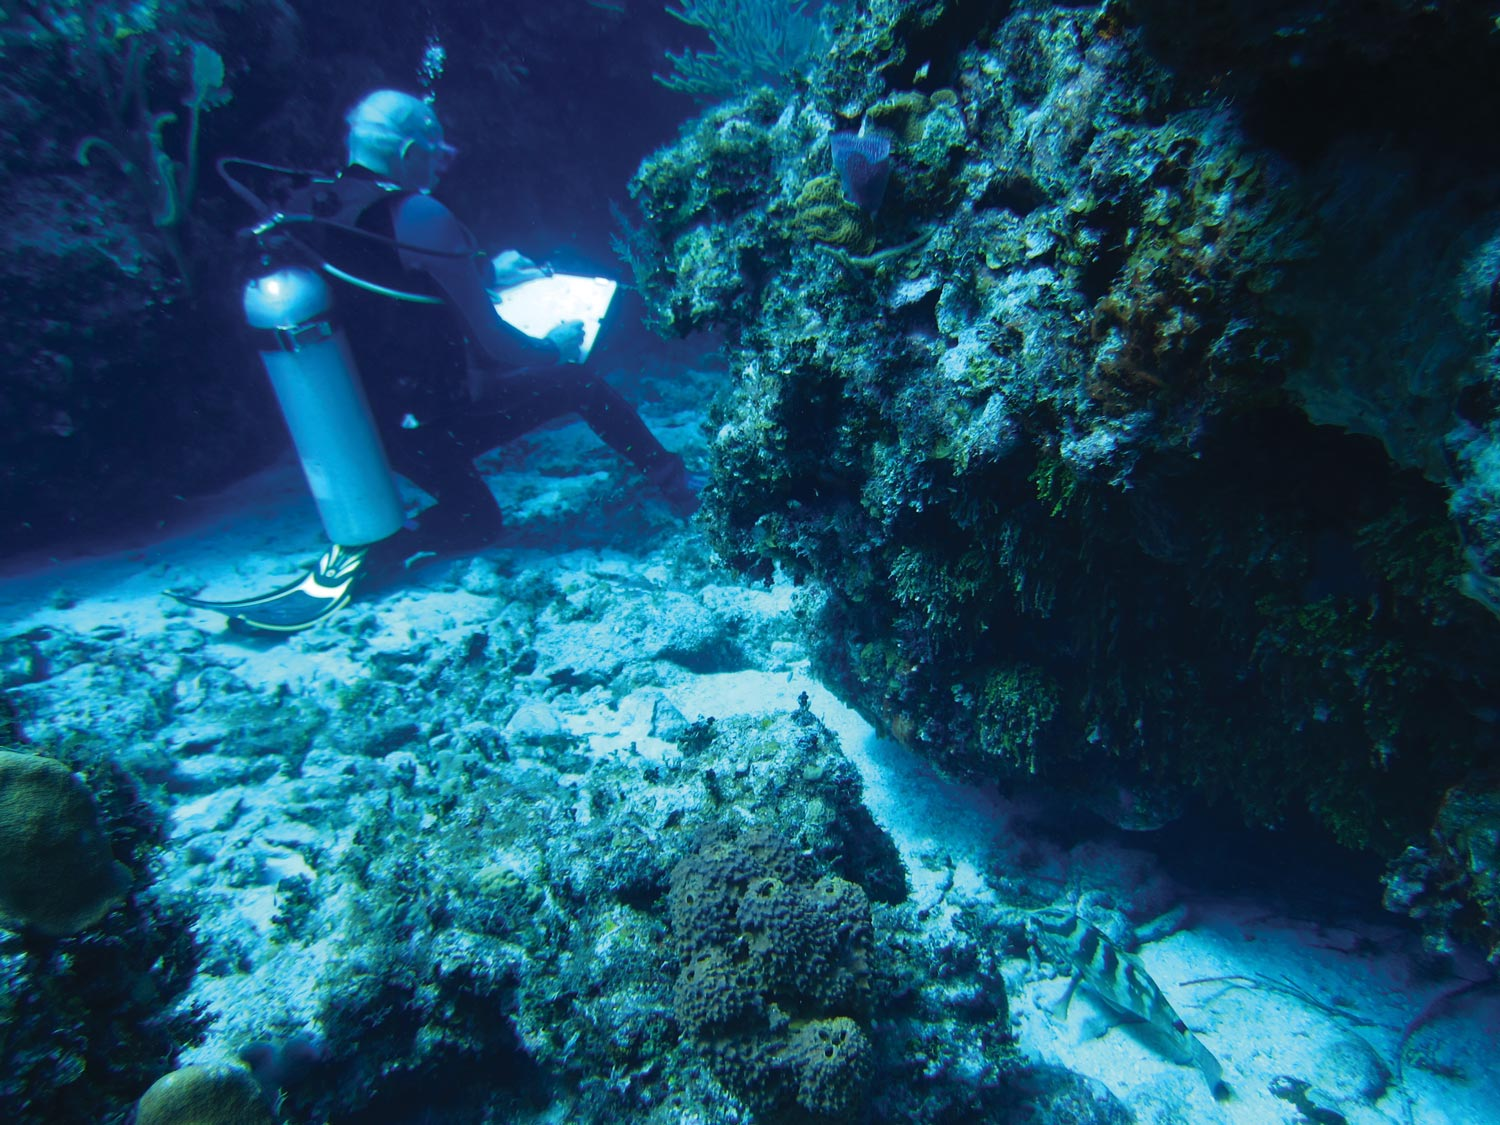 Tony Foster drawing underwater in Little Cayman, Cayman Islands, November 2013. Photo by Laurie Cullenward